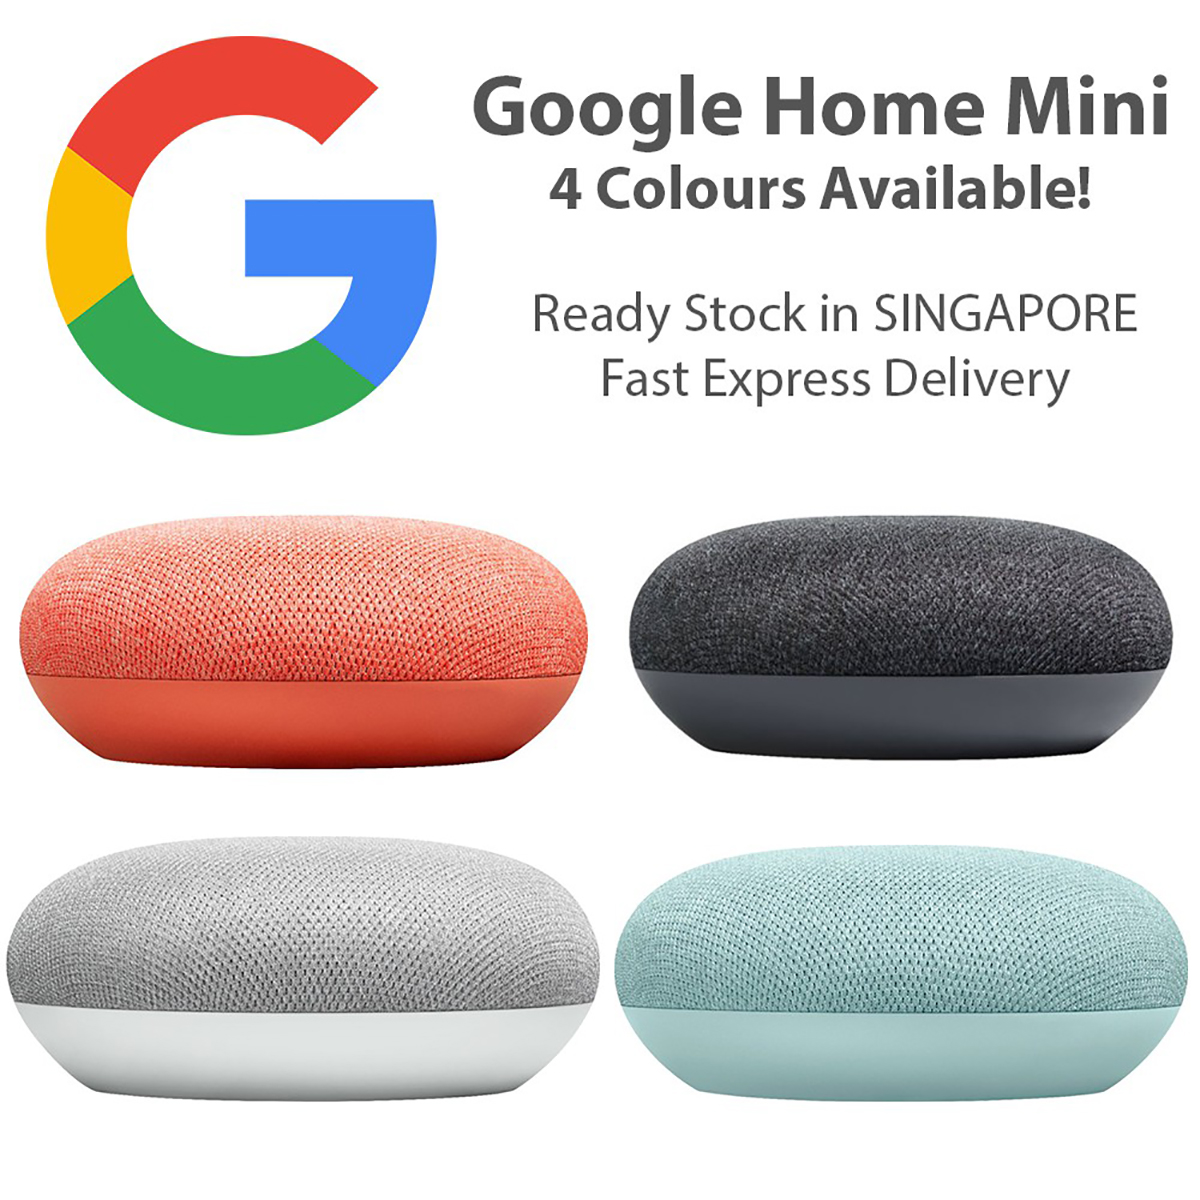 Google Home Mini Smart Speaker (Coral) with Google Assistant